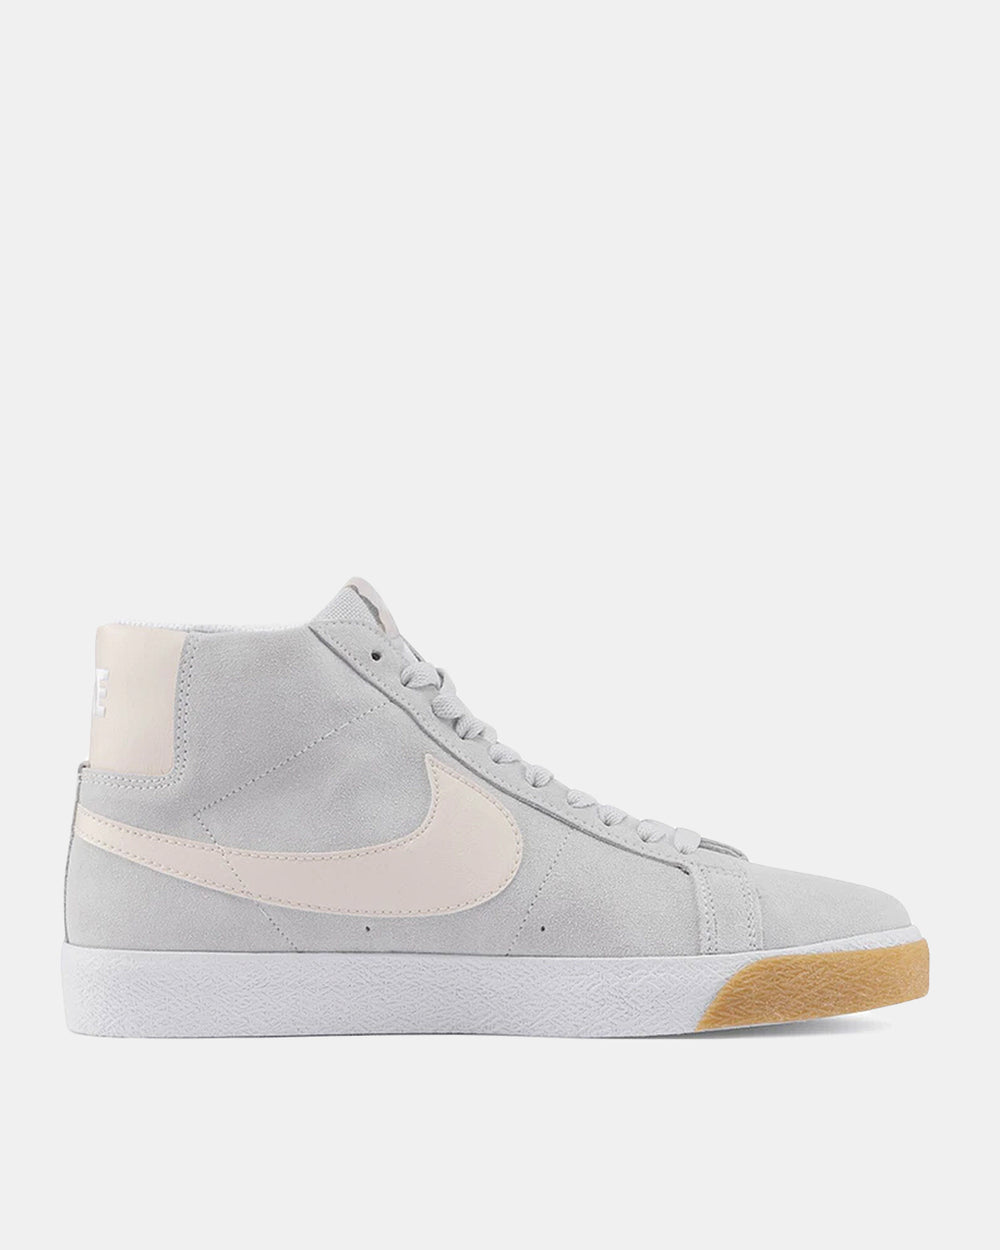 Zoom Blazer Mid (Photon Dust | Light Cream)